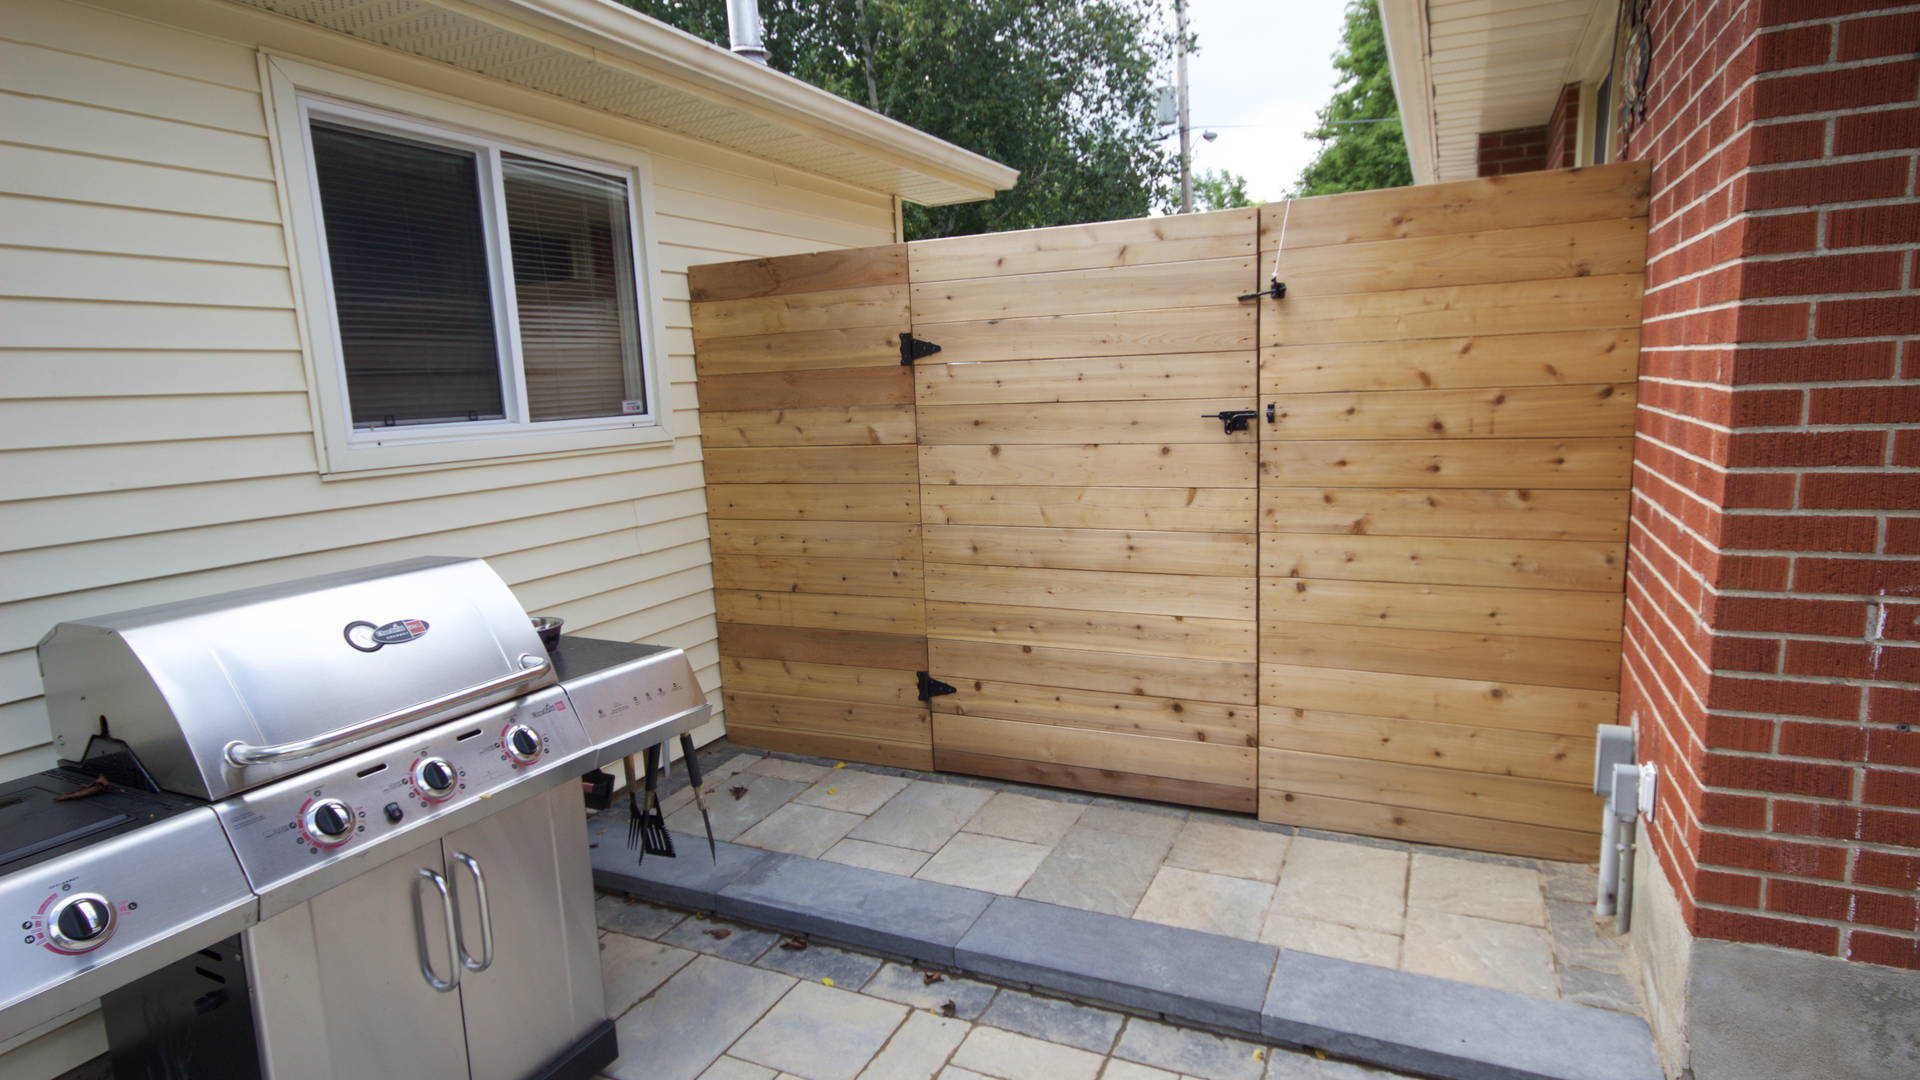 Small cooking area complete with a modern, horizontal fence and gate, and an interlock patio made up of large, pre-fabricated stones for the barbecue to rest on. Modern hardscaping and woodwork project in London Ontario.